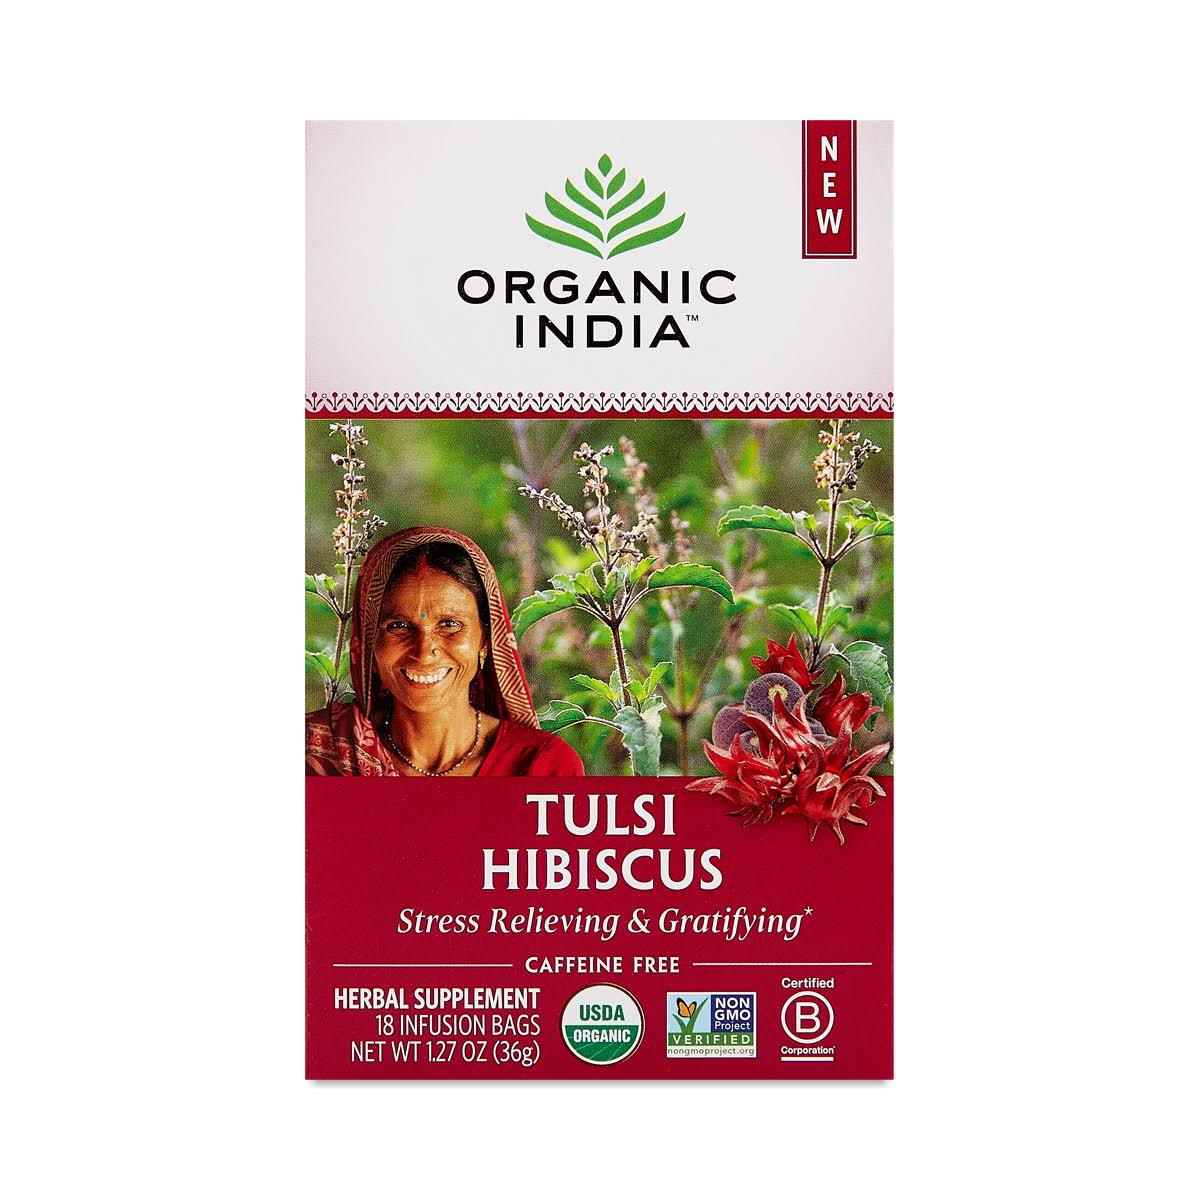 Organic India Tulsi Hibiscus, Infusion Bags - 18 bags, 1.27 oz